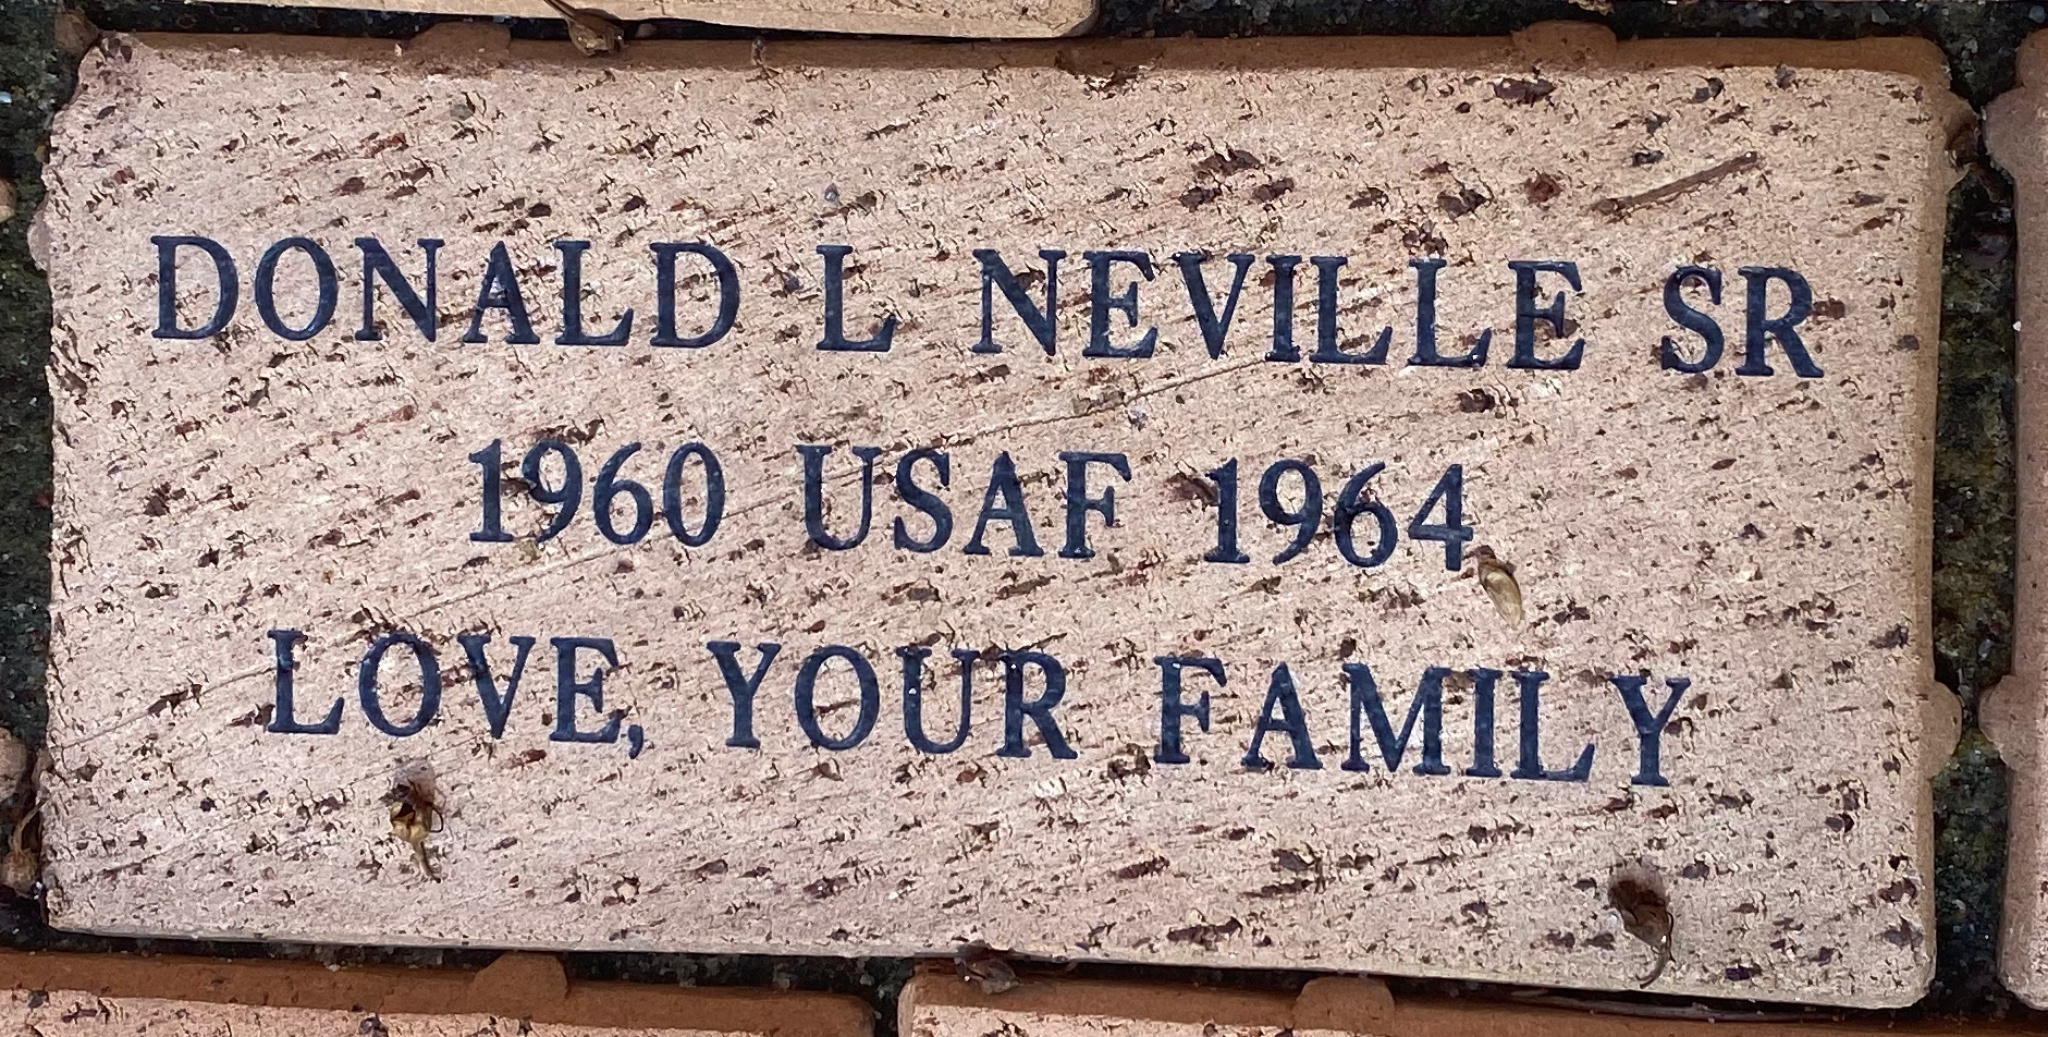 DONALD L NEVILLE SR 1960 USAF 1964 LOVE, YOUR FAMILY